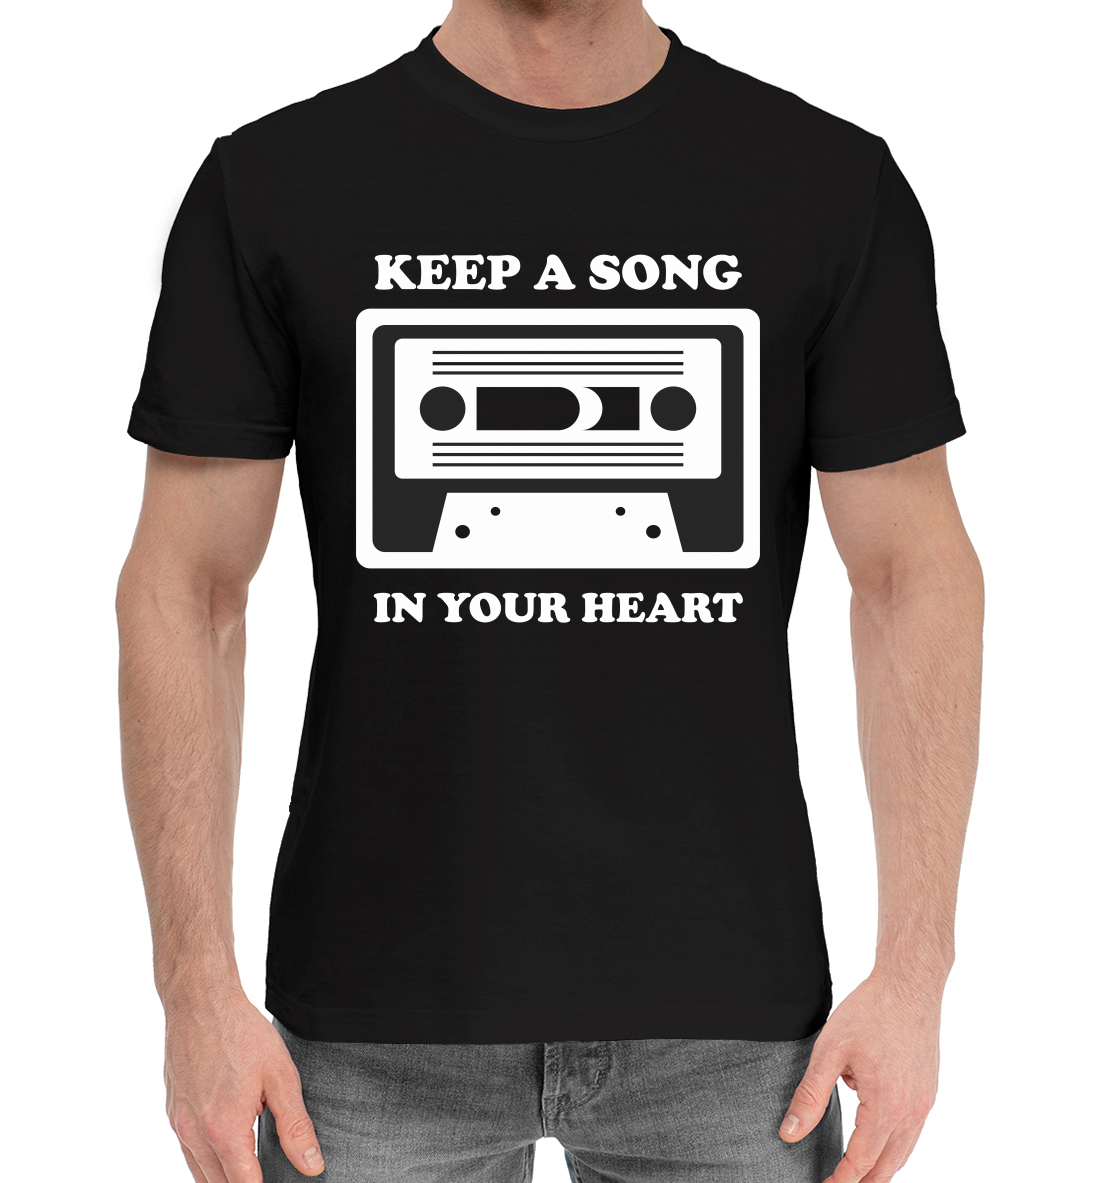 Keep a song in your heart janet e tobitt sing me your song